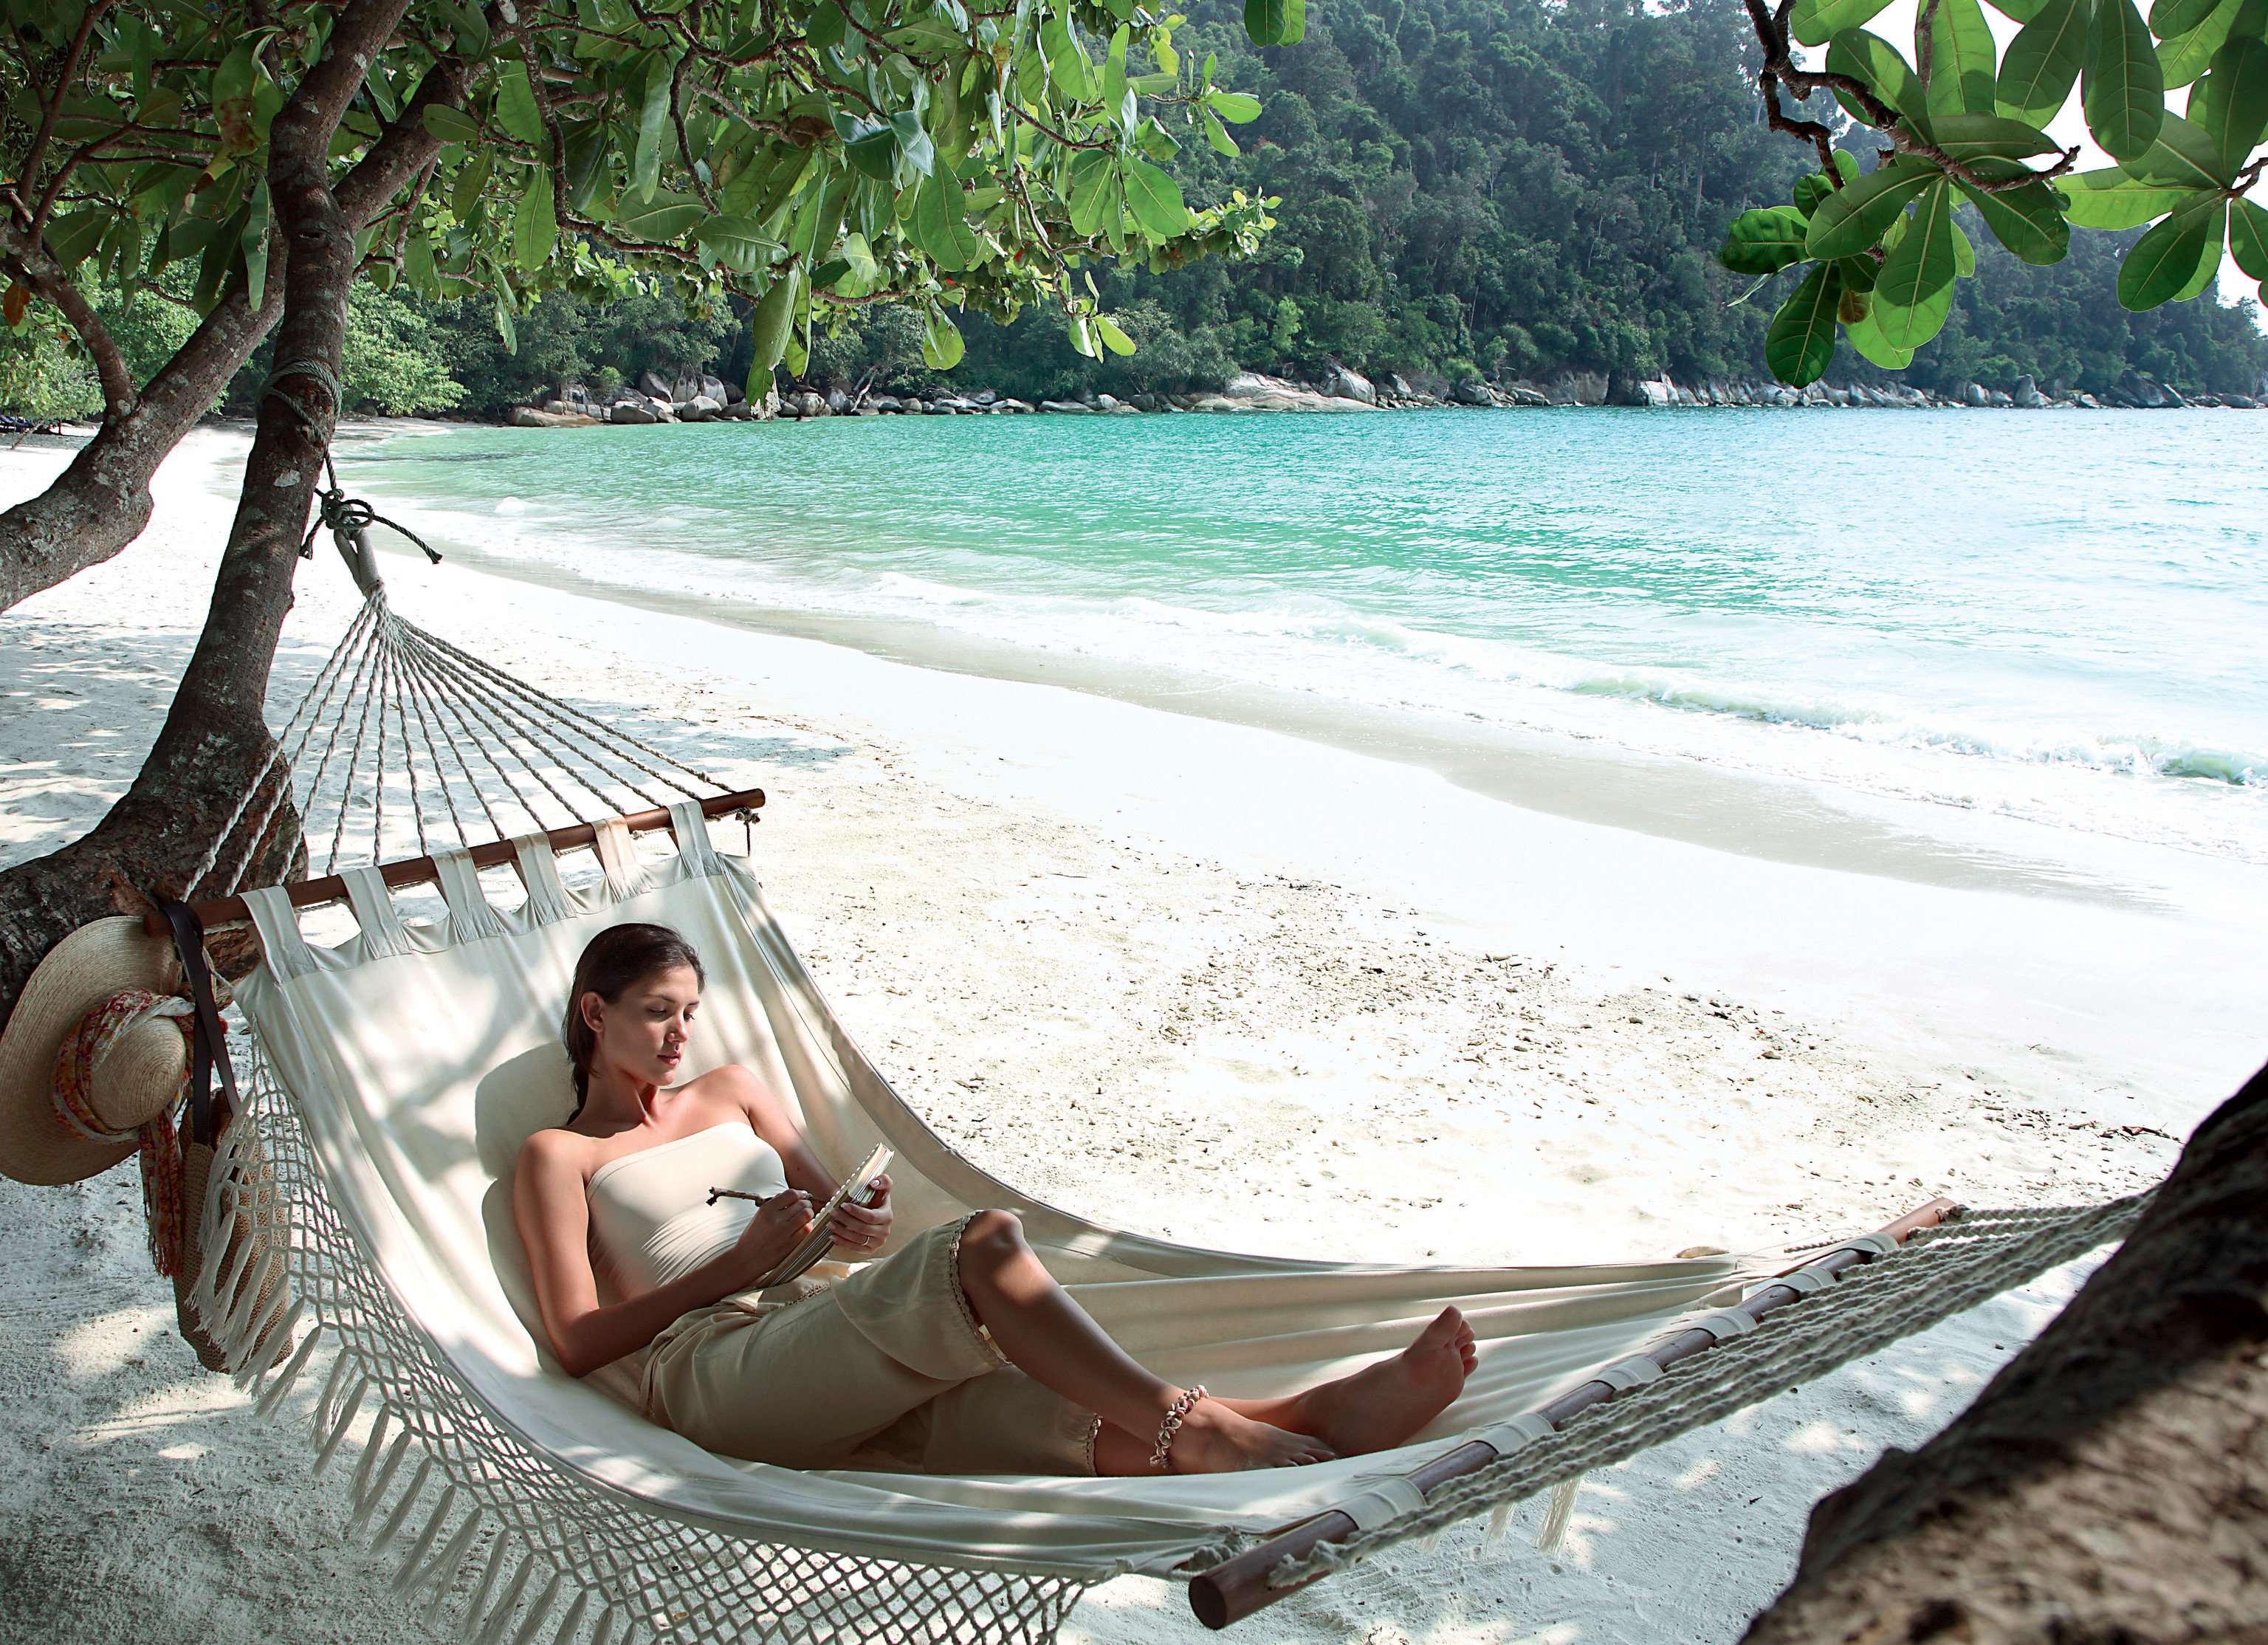 Hotels tree outdoor water bed leisure hammock Beach furniture vacation